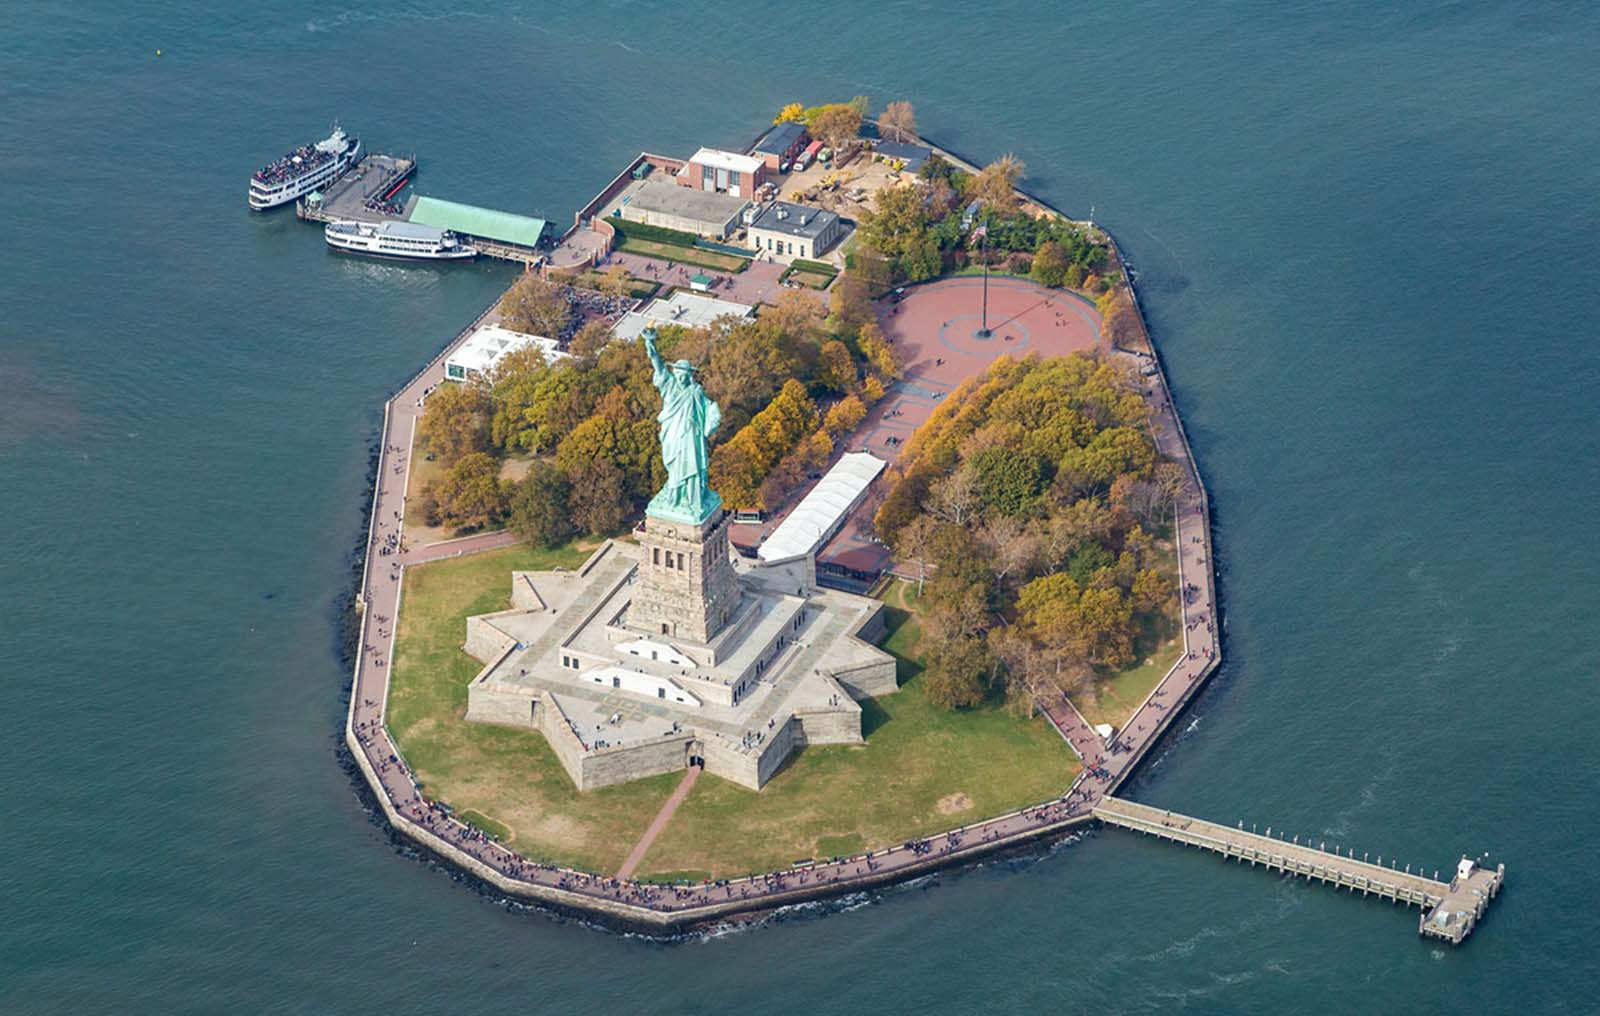 An aerial view of the statue and Liberty Island, taken in October 2015.